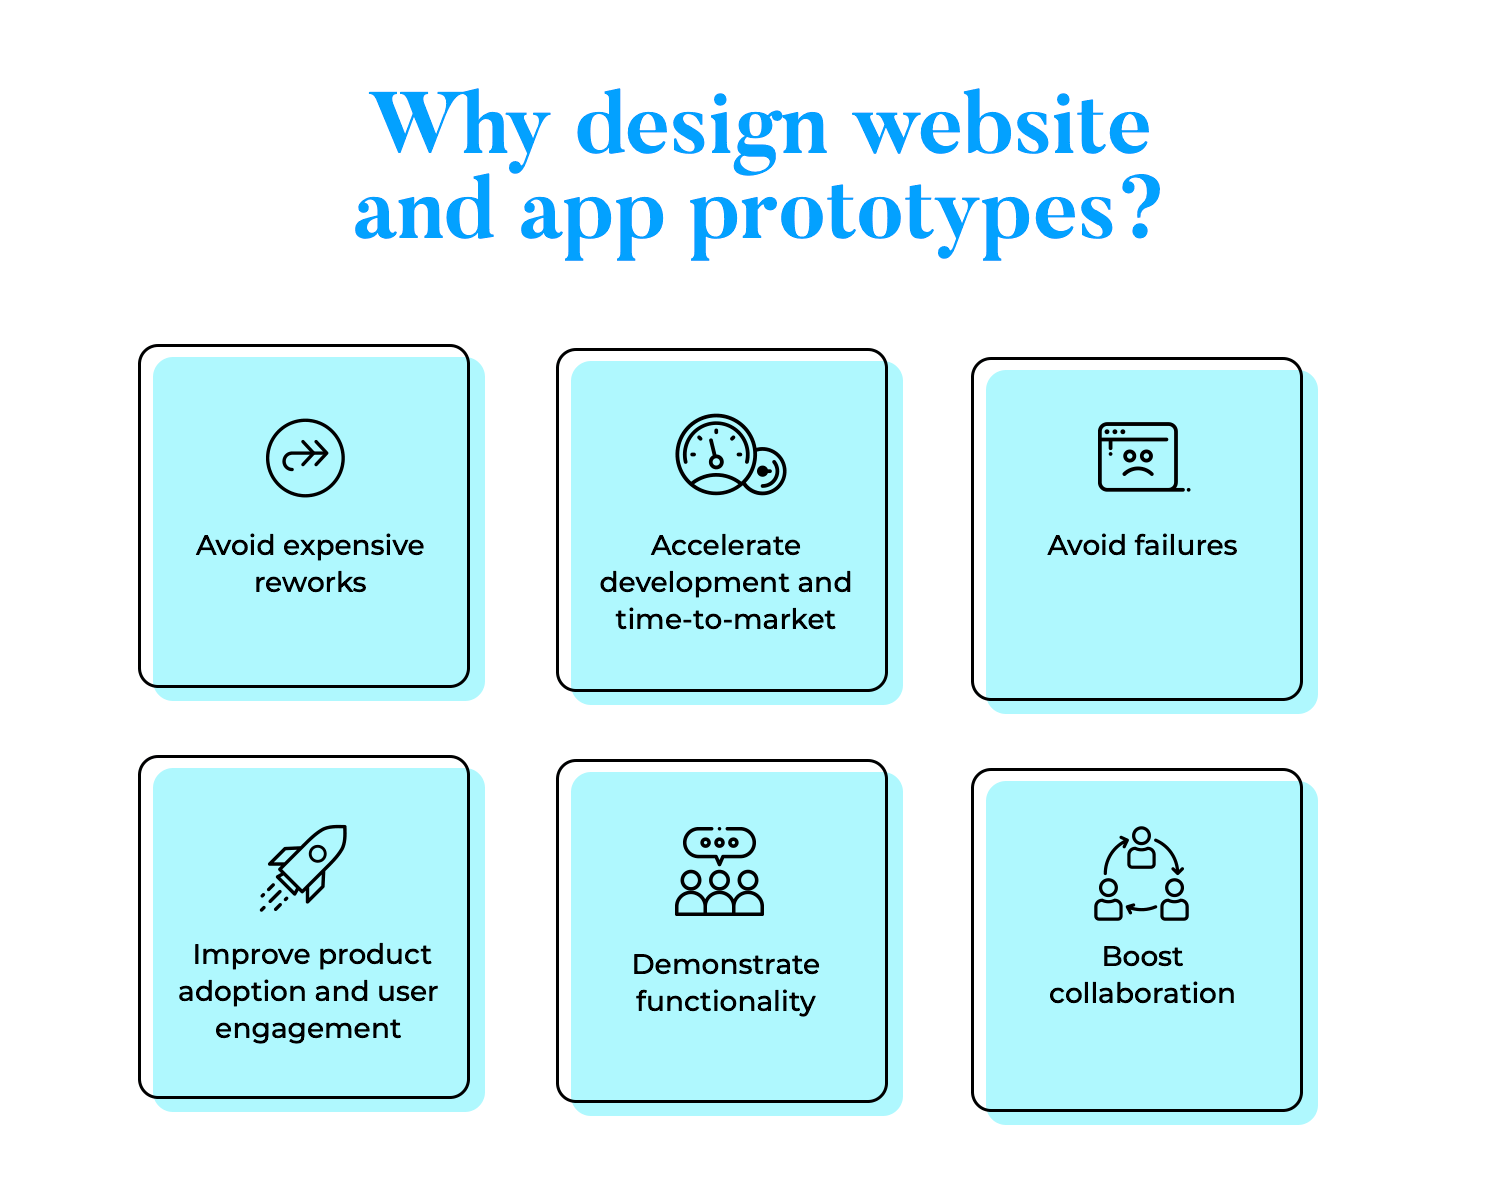 Reasons to design web and app prototypes